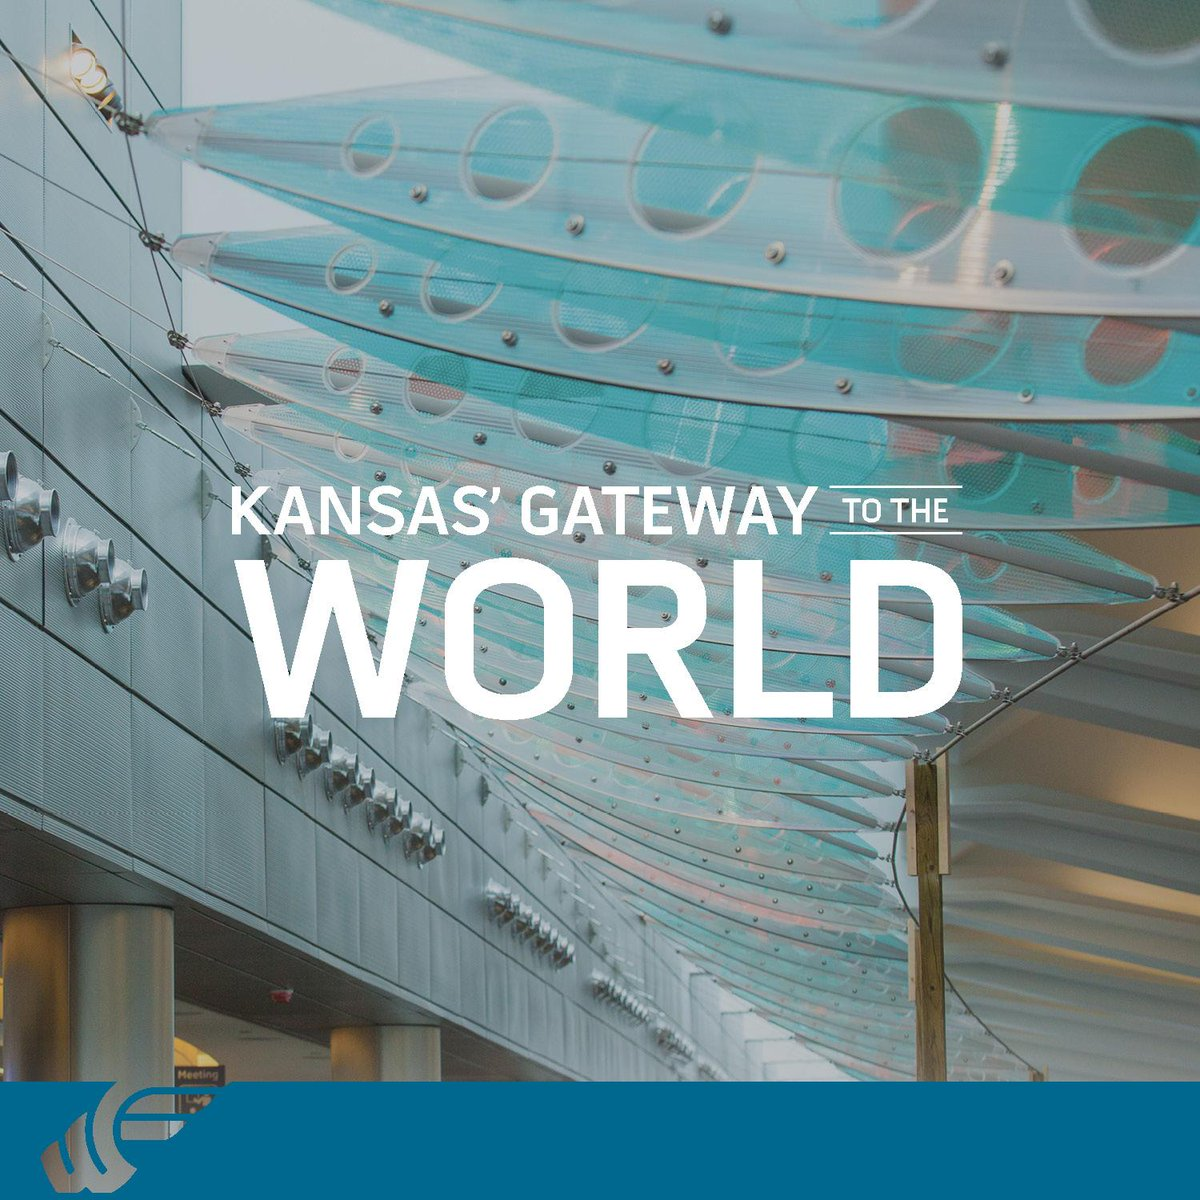 The new terminal is open and its our gateway to the world, and the world's portal to Kansas. #ItChangesToday http://t.co/CUkwJWEMMF